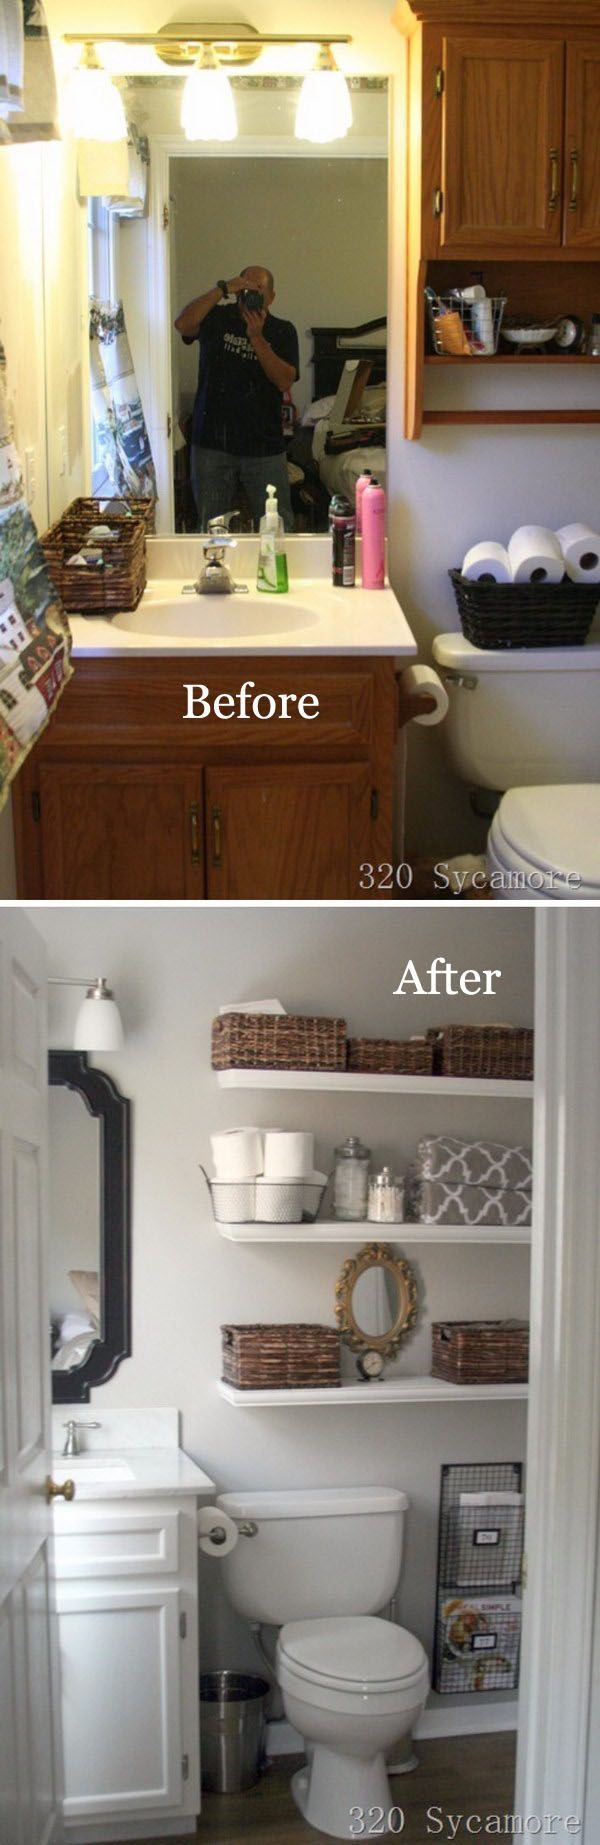 Small bathroom ideas - Before And After 20 Awesome Bathroom Makeovers